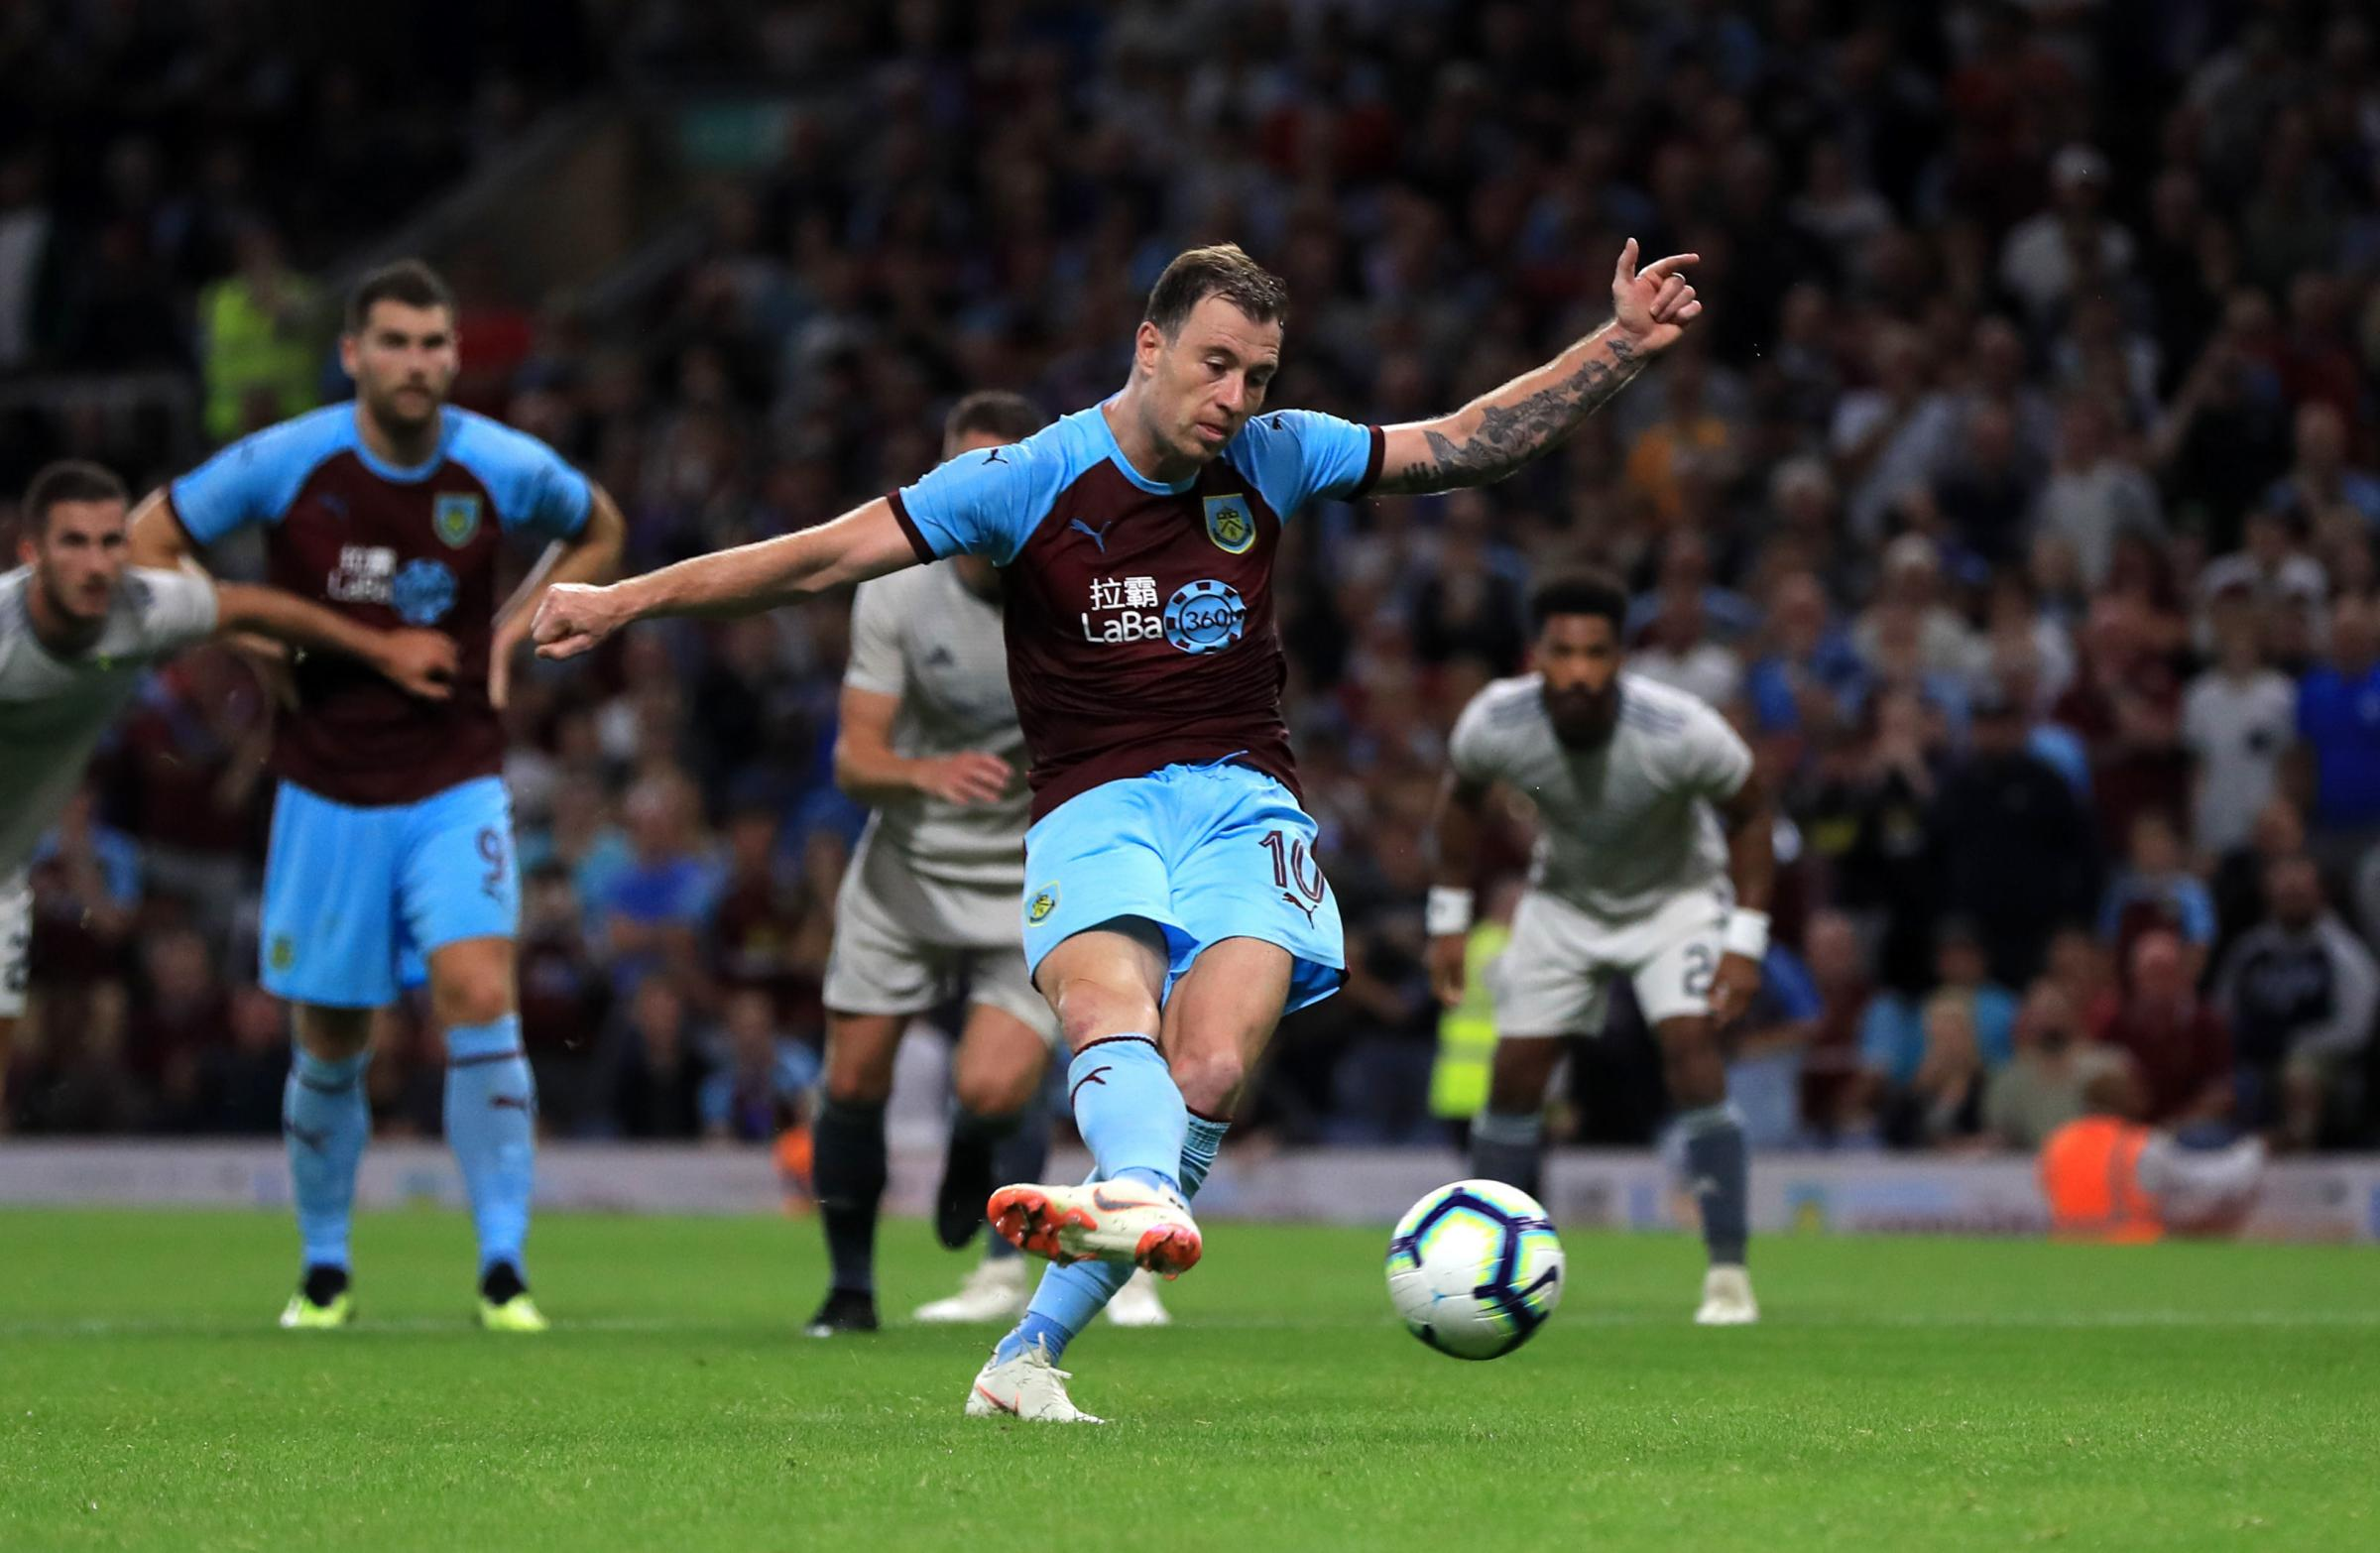 Burnley's Ashley Barnes scores his sides third goal from the penalty spot during the UEFA Europa League, Second Qualifying Round, Second Leg match at Turf Moor, Burnley. PRESS ASSOCIATION Photo, Picture date: Thursday August 2, 2018. See